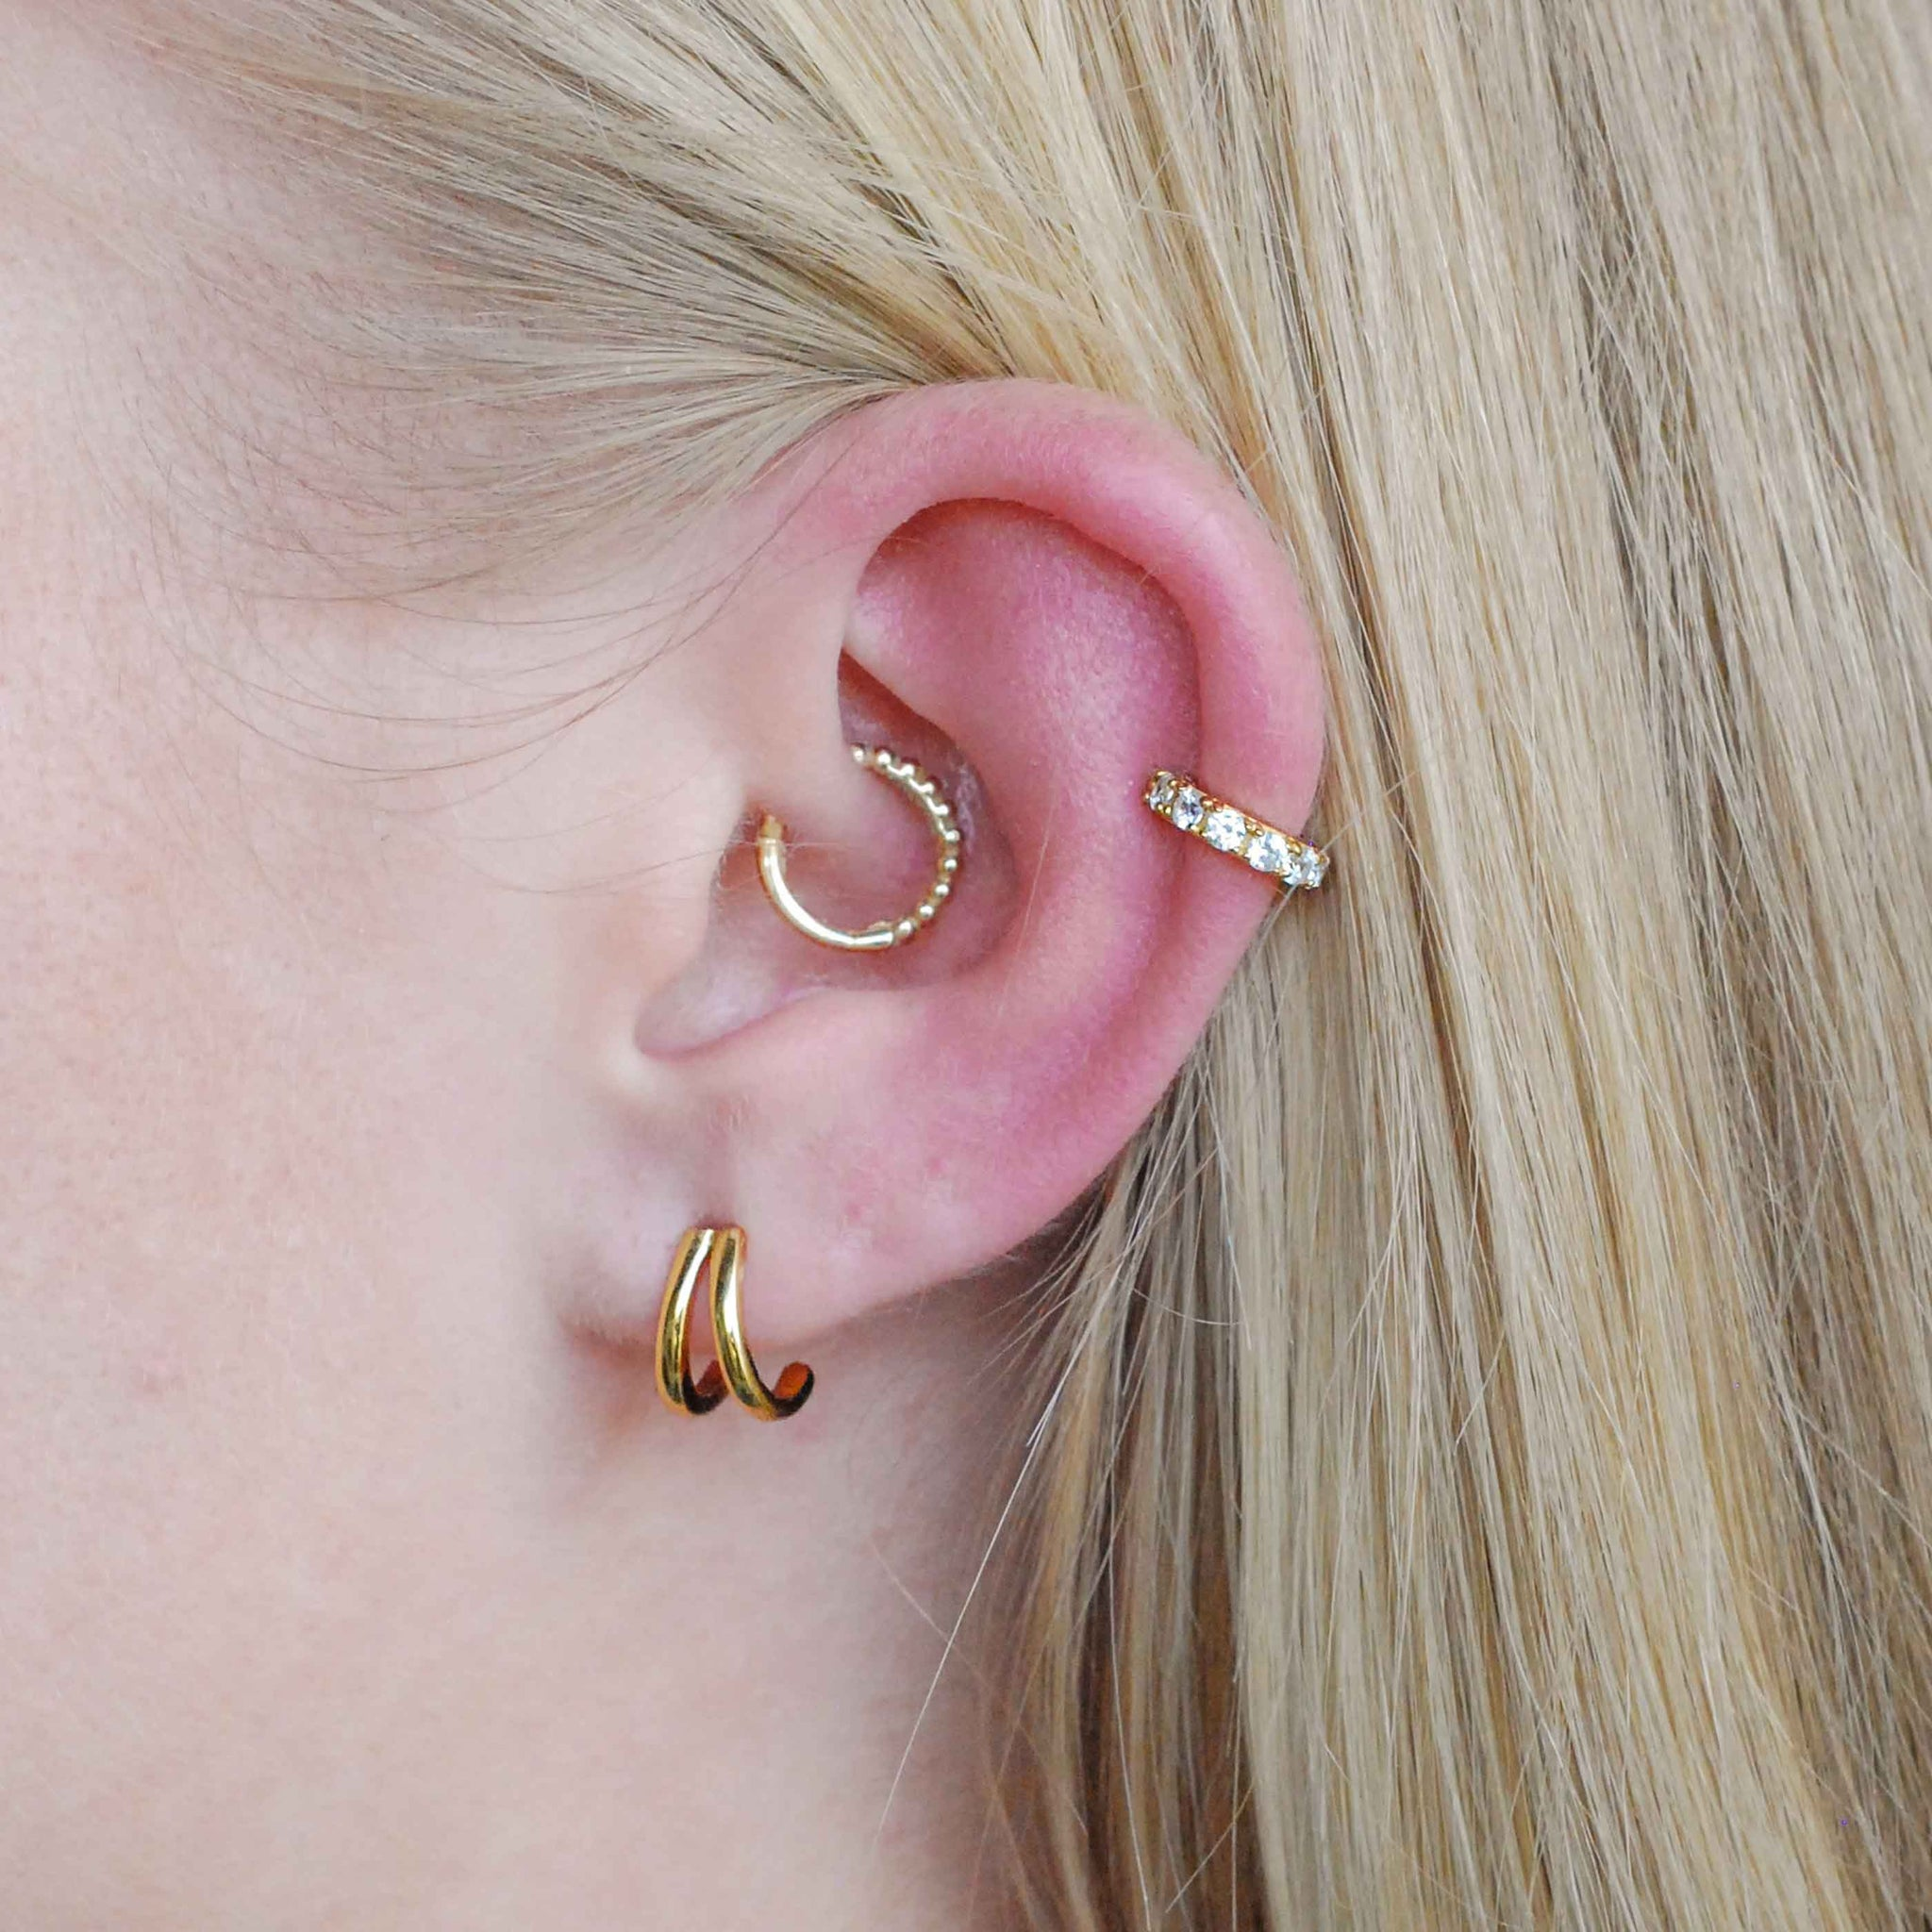 Mini Wishbone Ear Cuff in Gold worn with double bar stud earrings